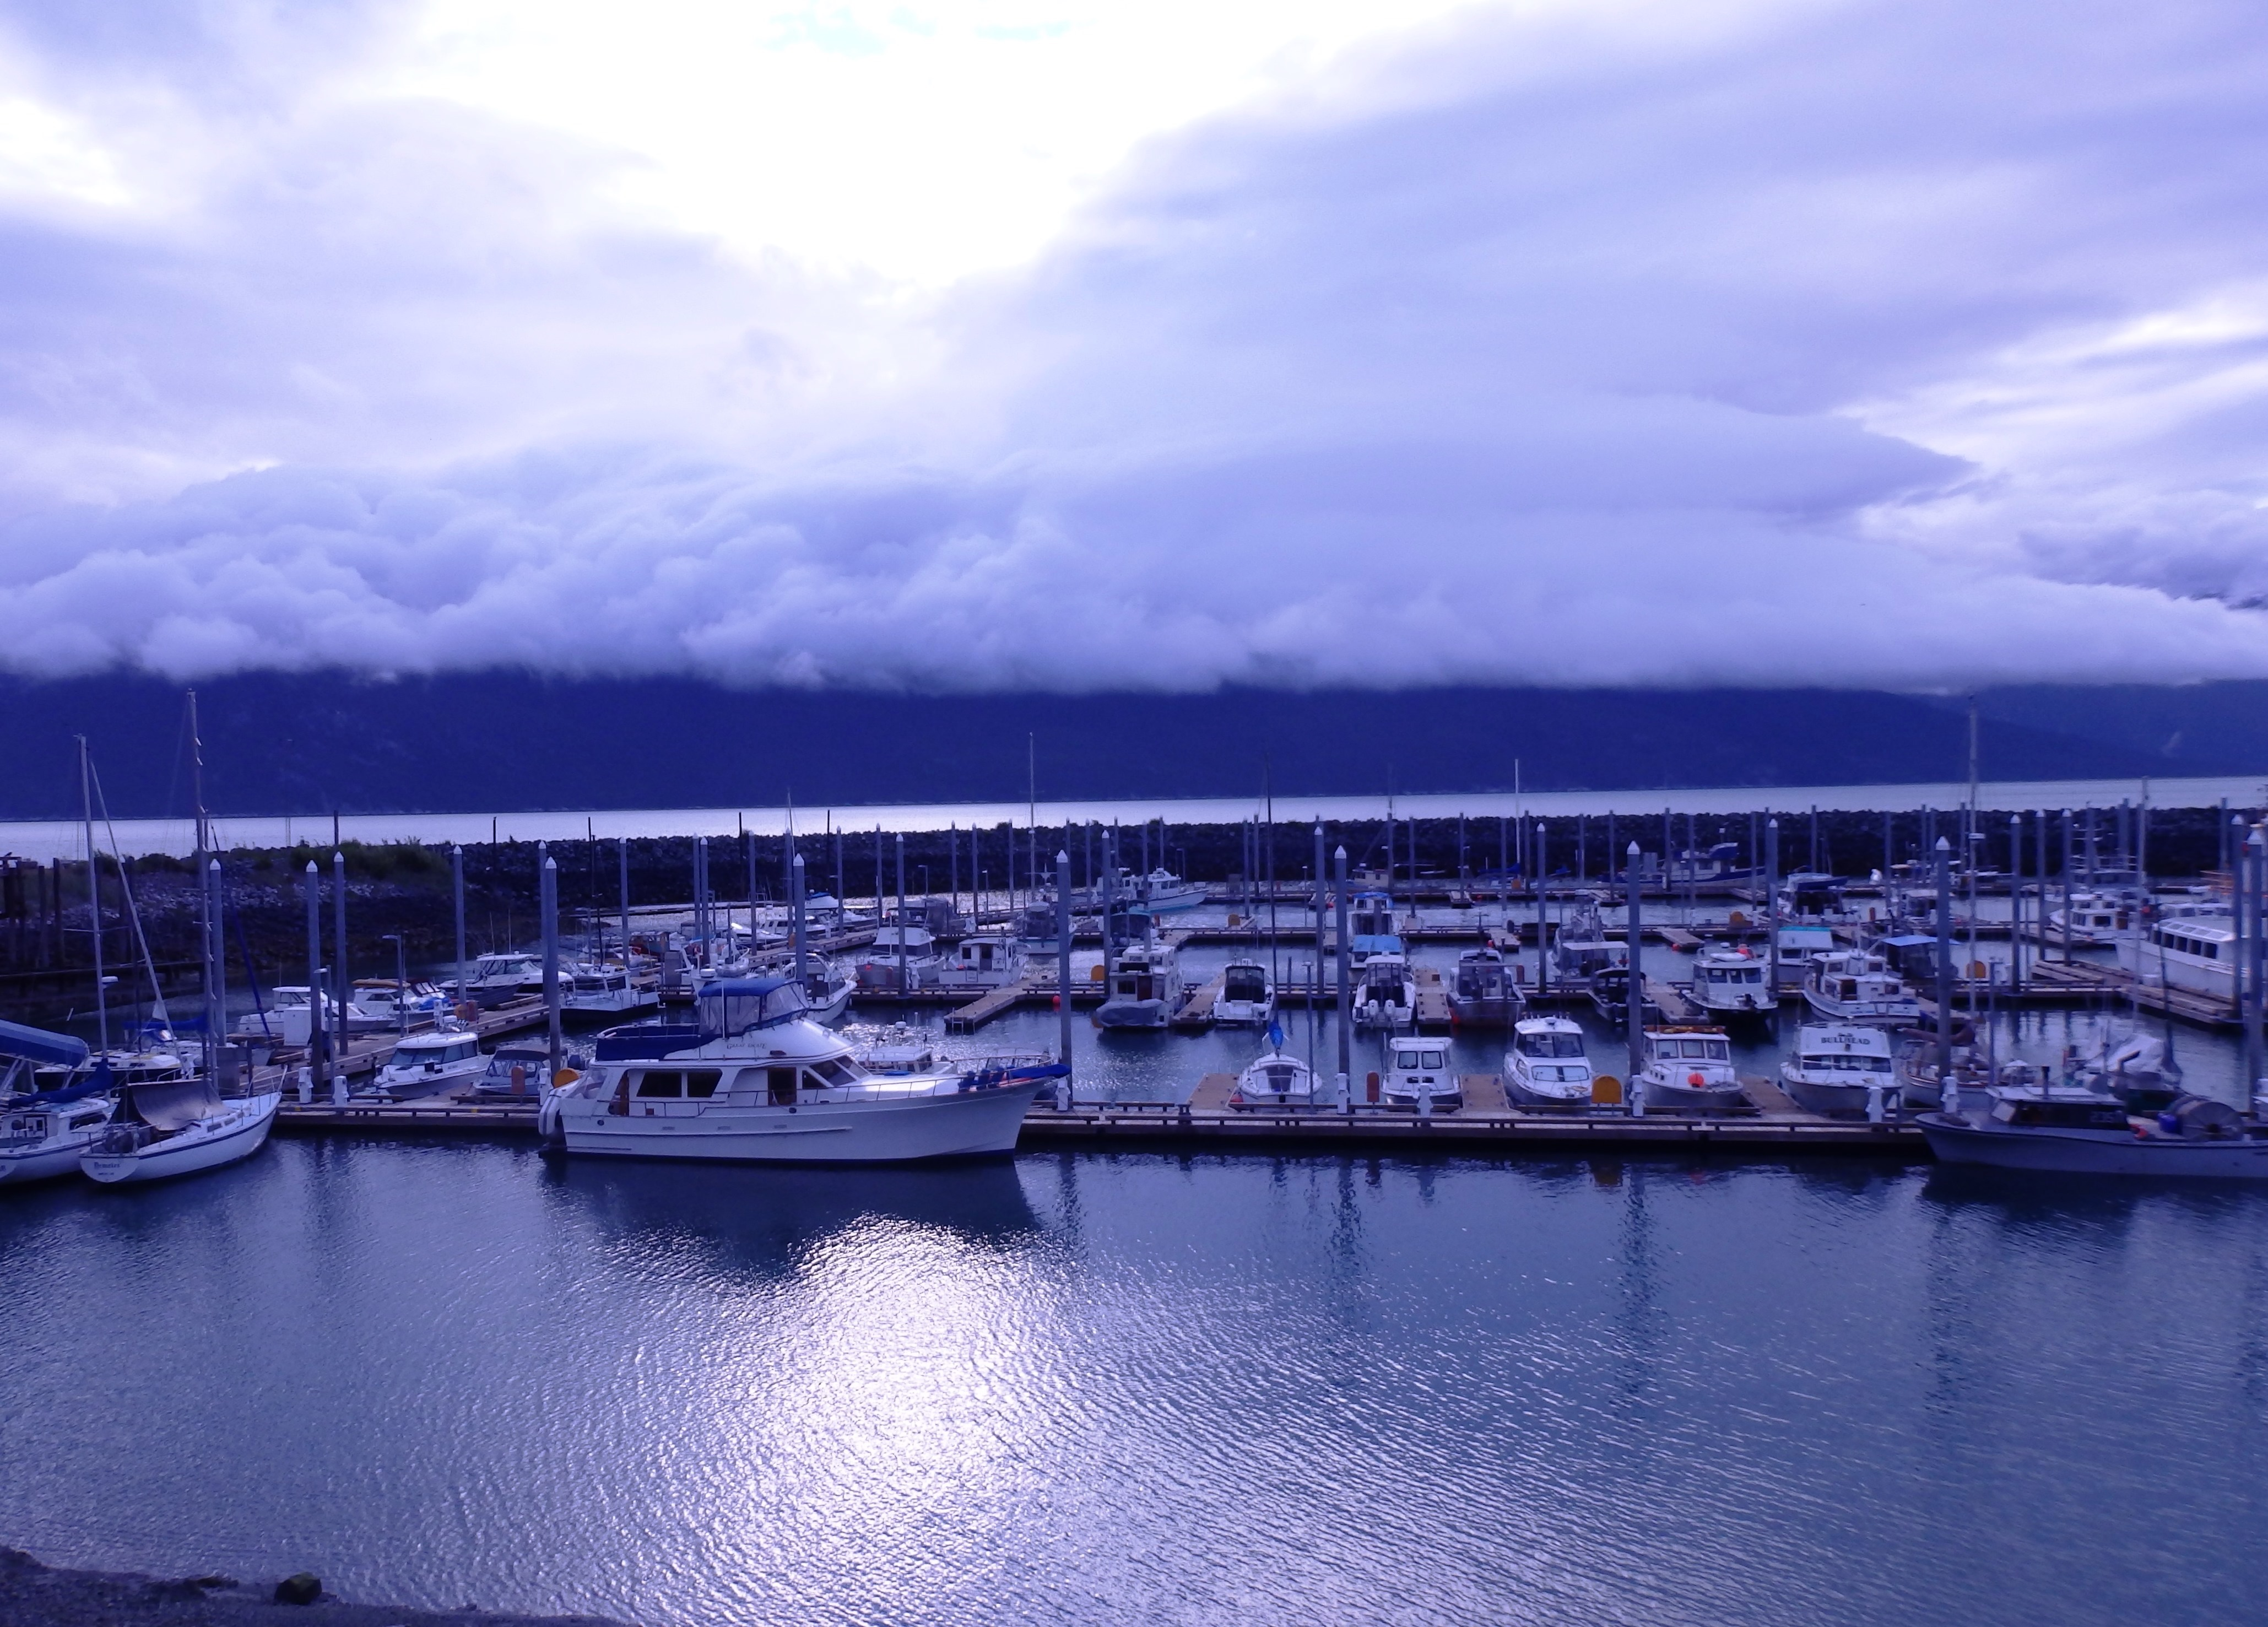 Commercial fishermen throughout the state, such as those in The Haines Portage Cove Harbor pictured here, received a letter warning of the dangers of opioids this summer. (Photo by Emily Files/KHNS)